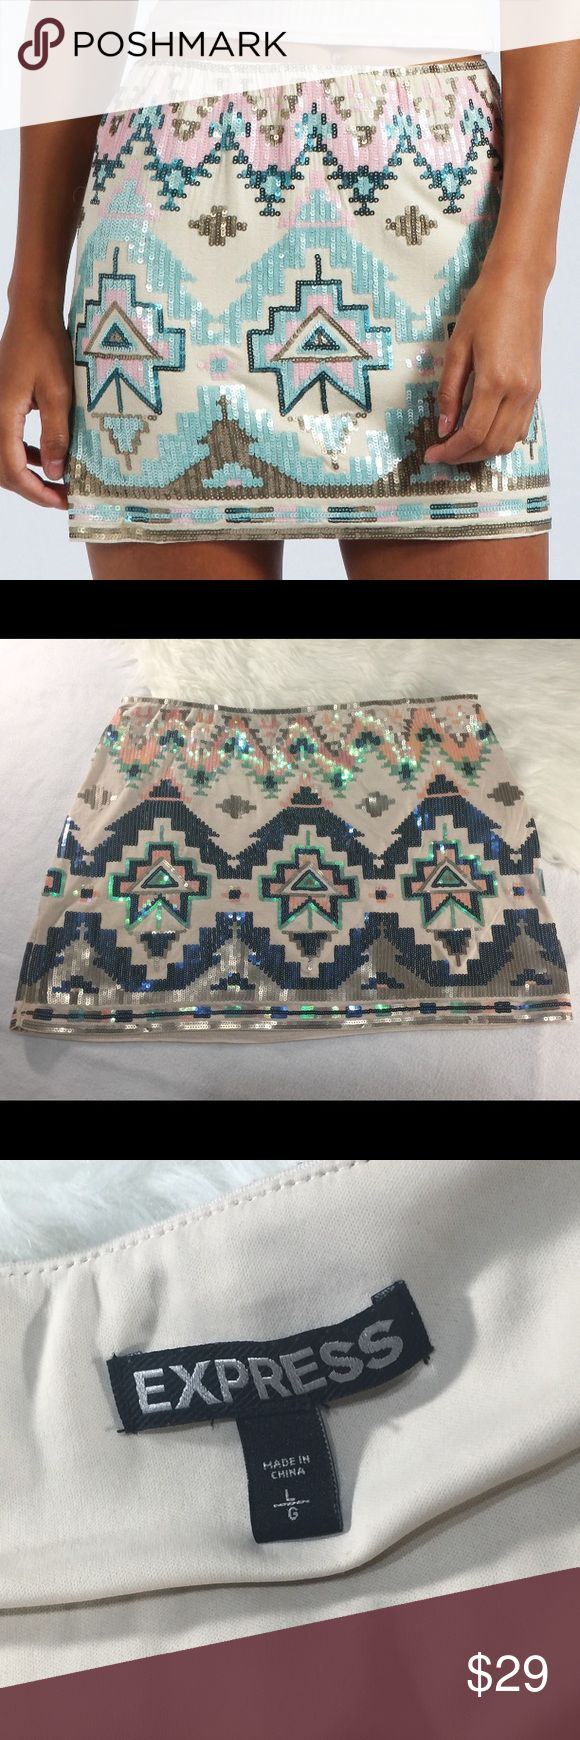 Express Aztec Sequin Skirt size Large Express Aztec Sequin Skirt size Large, beautiful and perfect for a night out. Express Skirts Mini